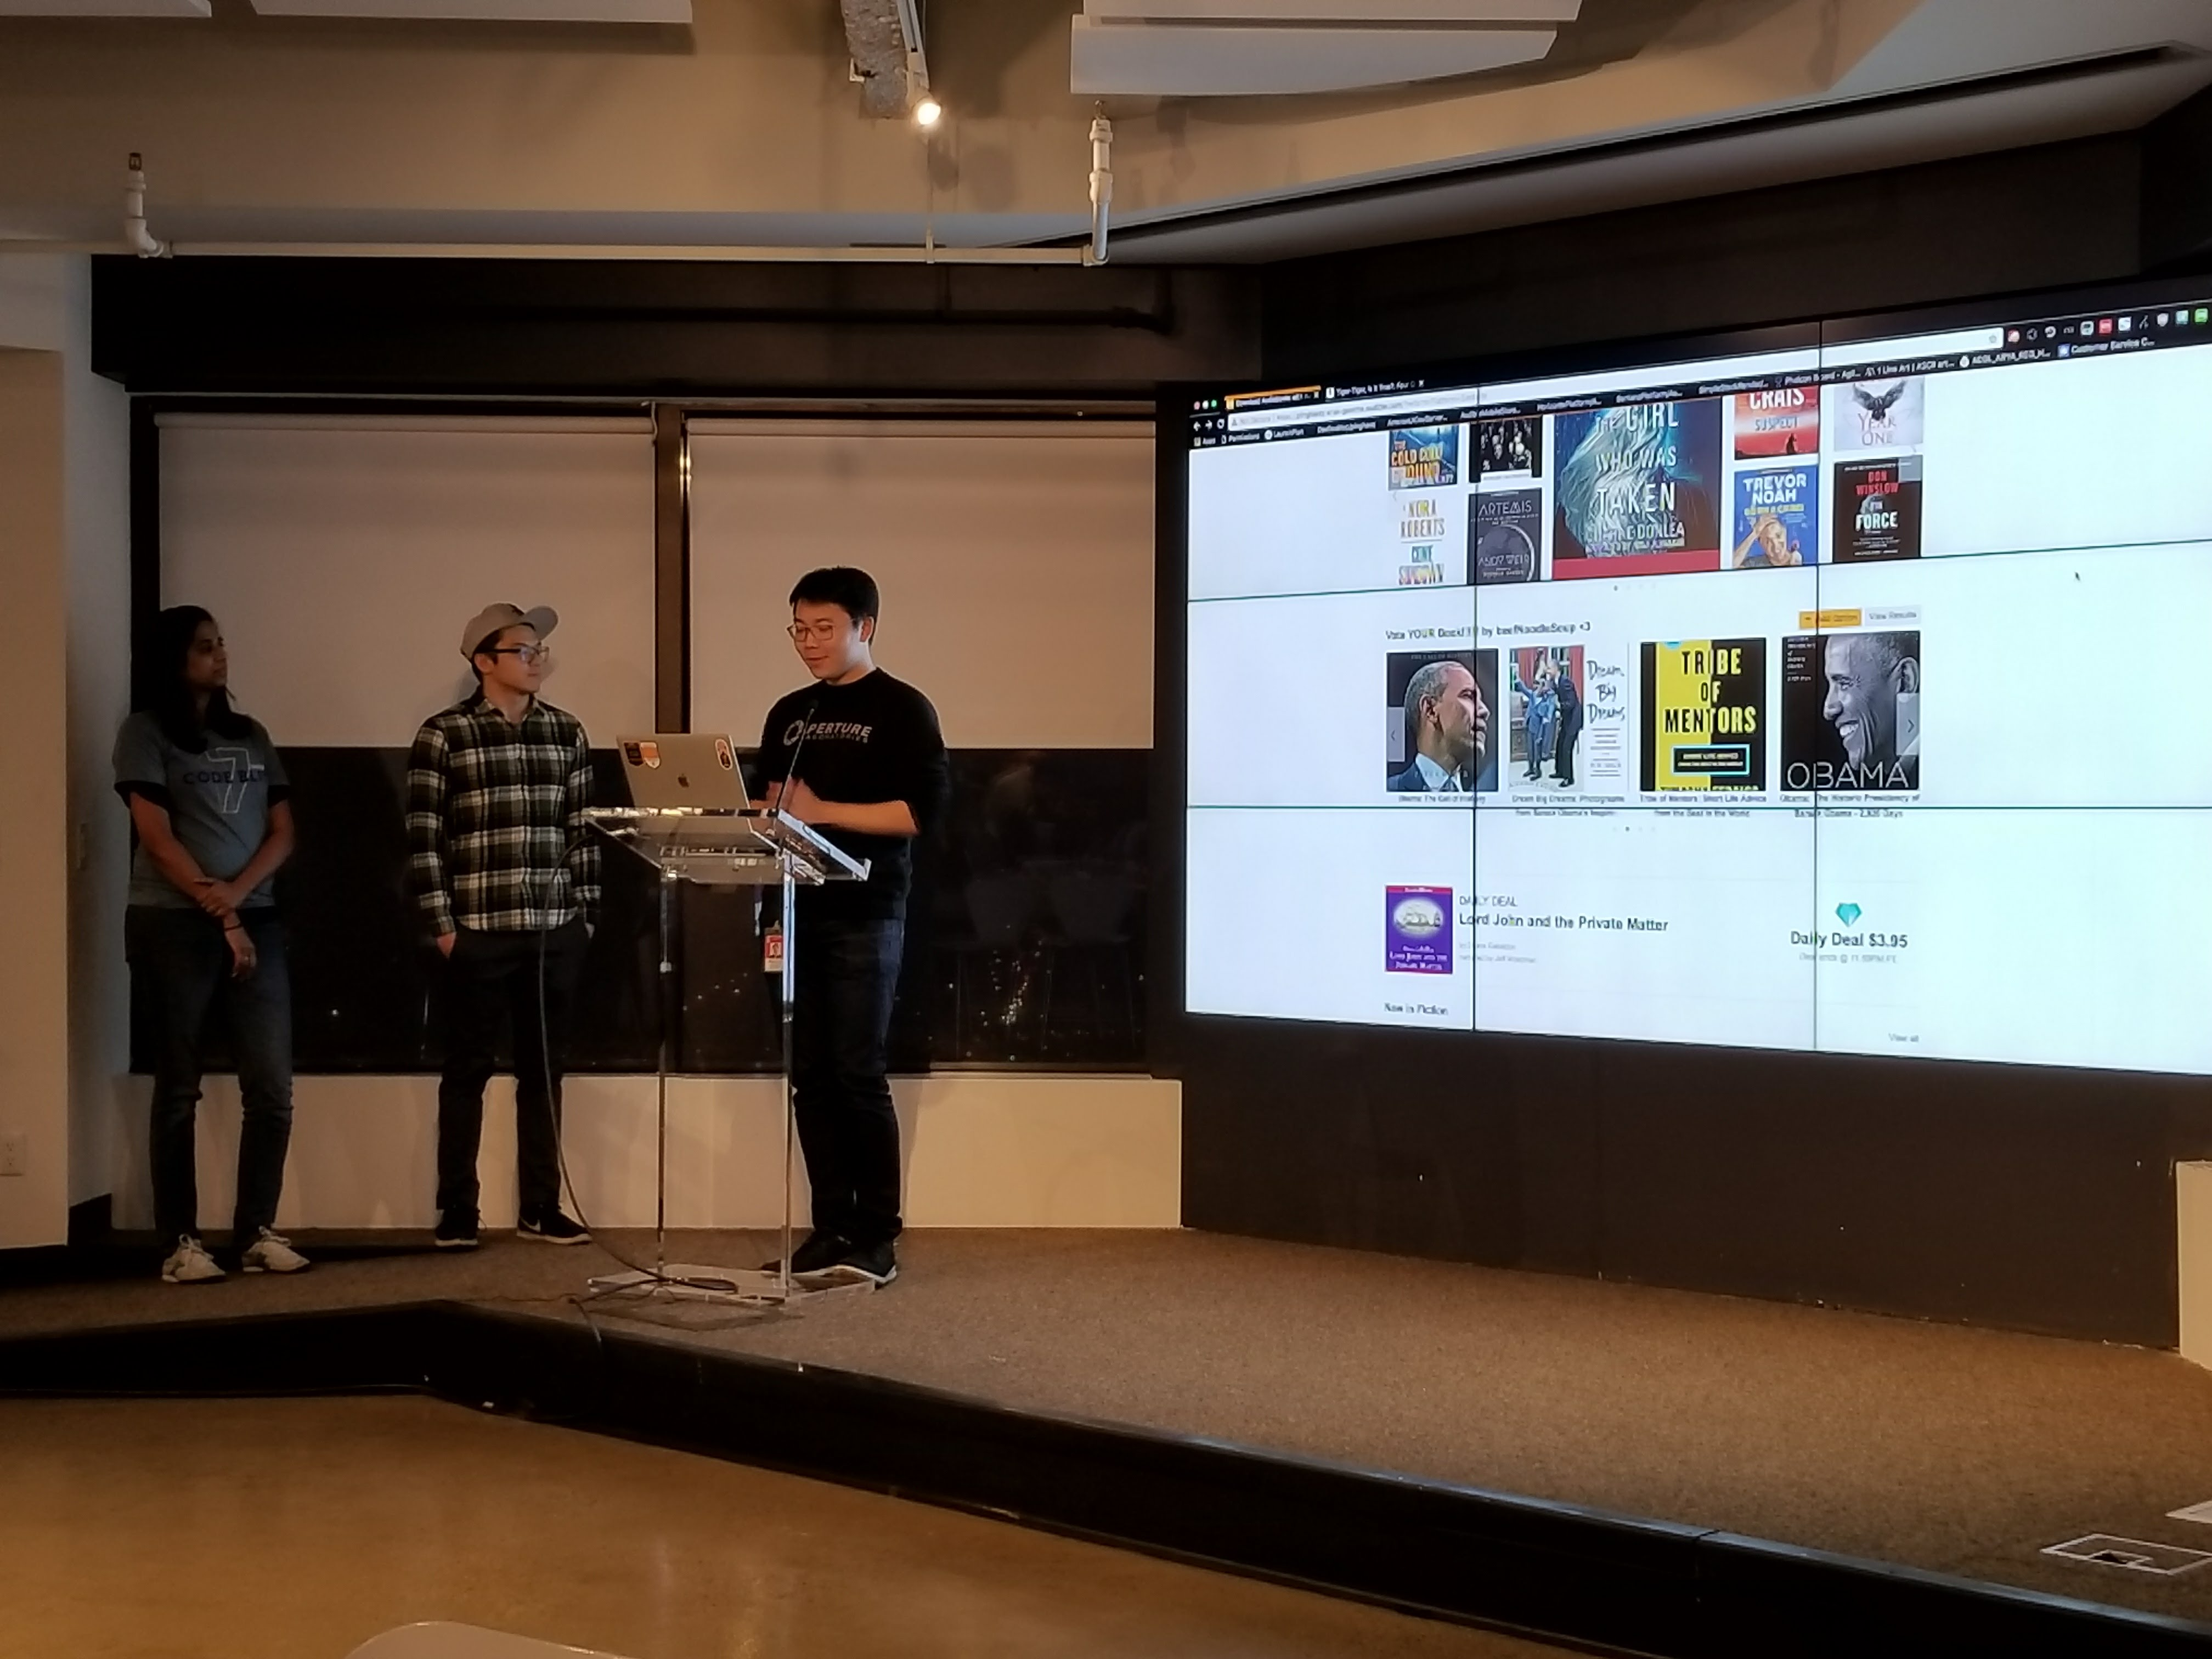 More Audible employees presenting their hackathon idea